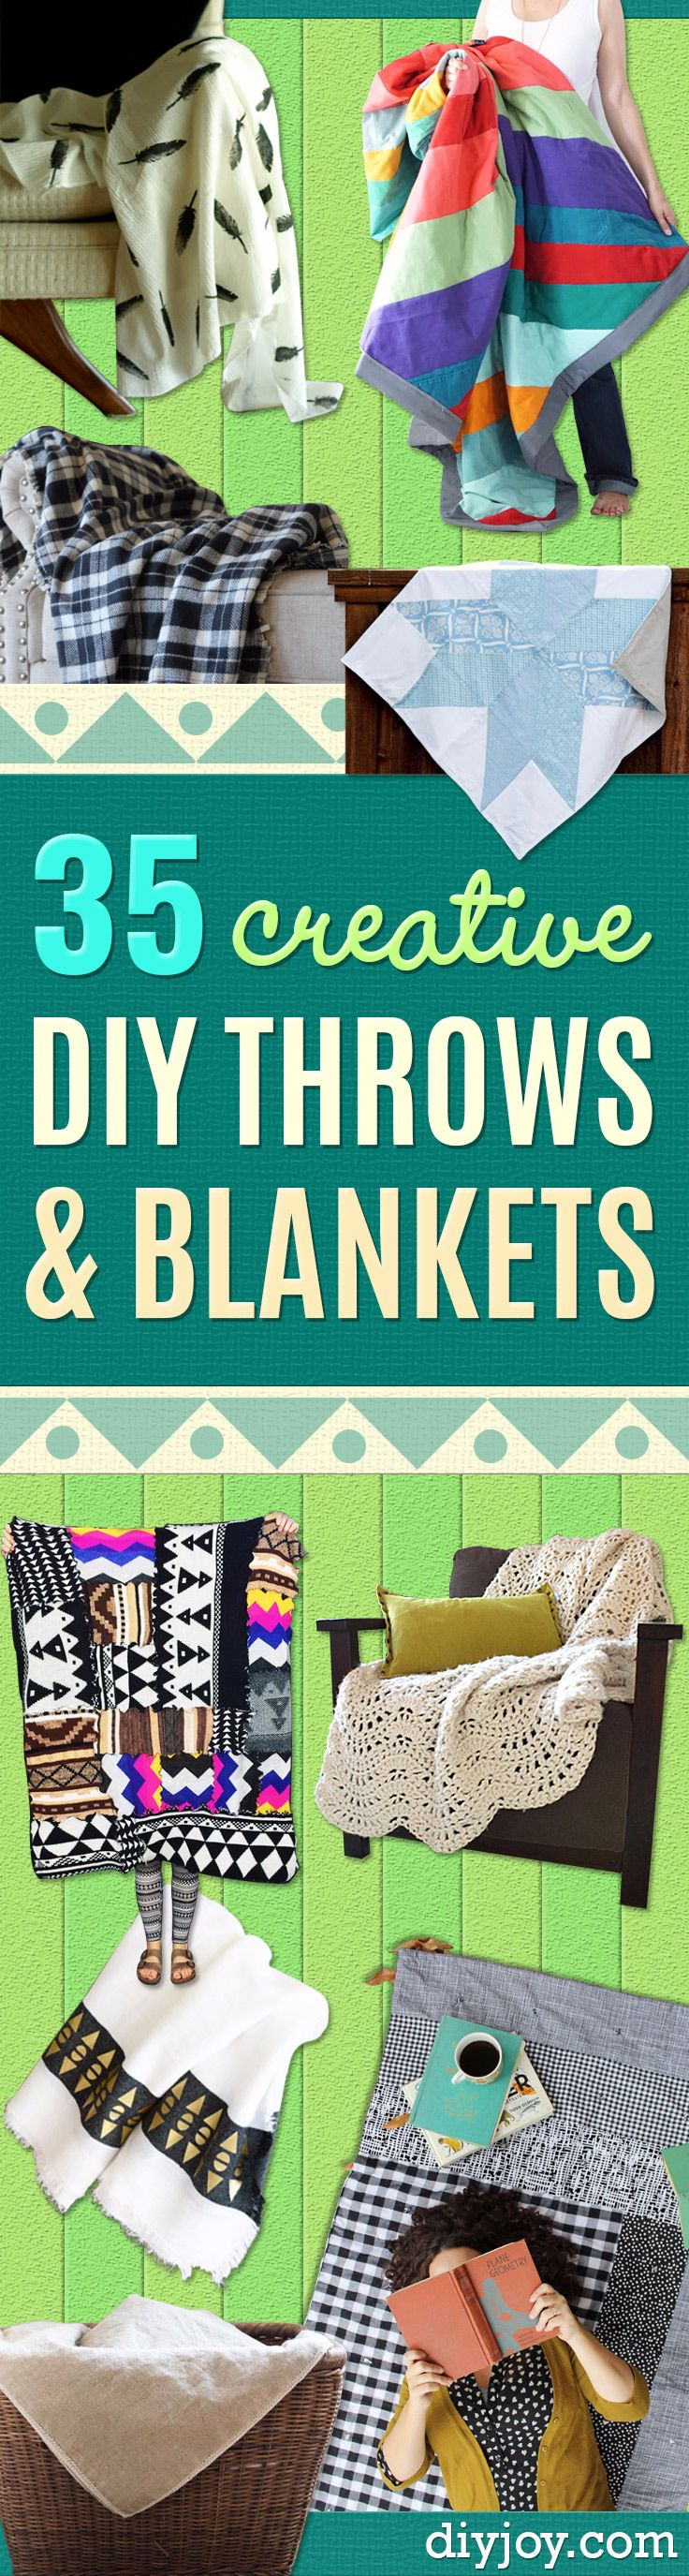 DIY Blankets and Throws - How To Make Easy Home Decor and Warm Covers for Women, Kids, Teens and Adults - Fleece, Knit, No Sew and Easy Projects to Make for Bed and Sofa - Creative Blanket Sewing Projects and Crafts http://diyjoy.com/diy-blankets-throws